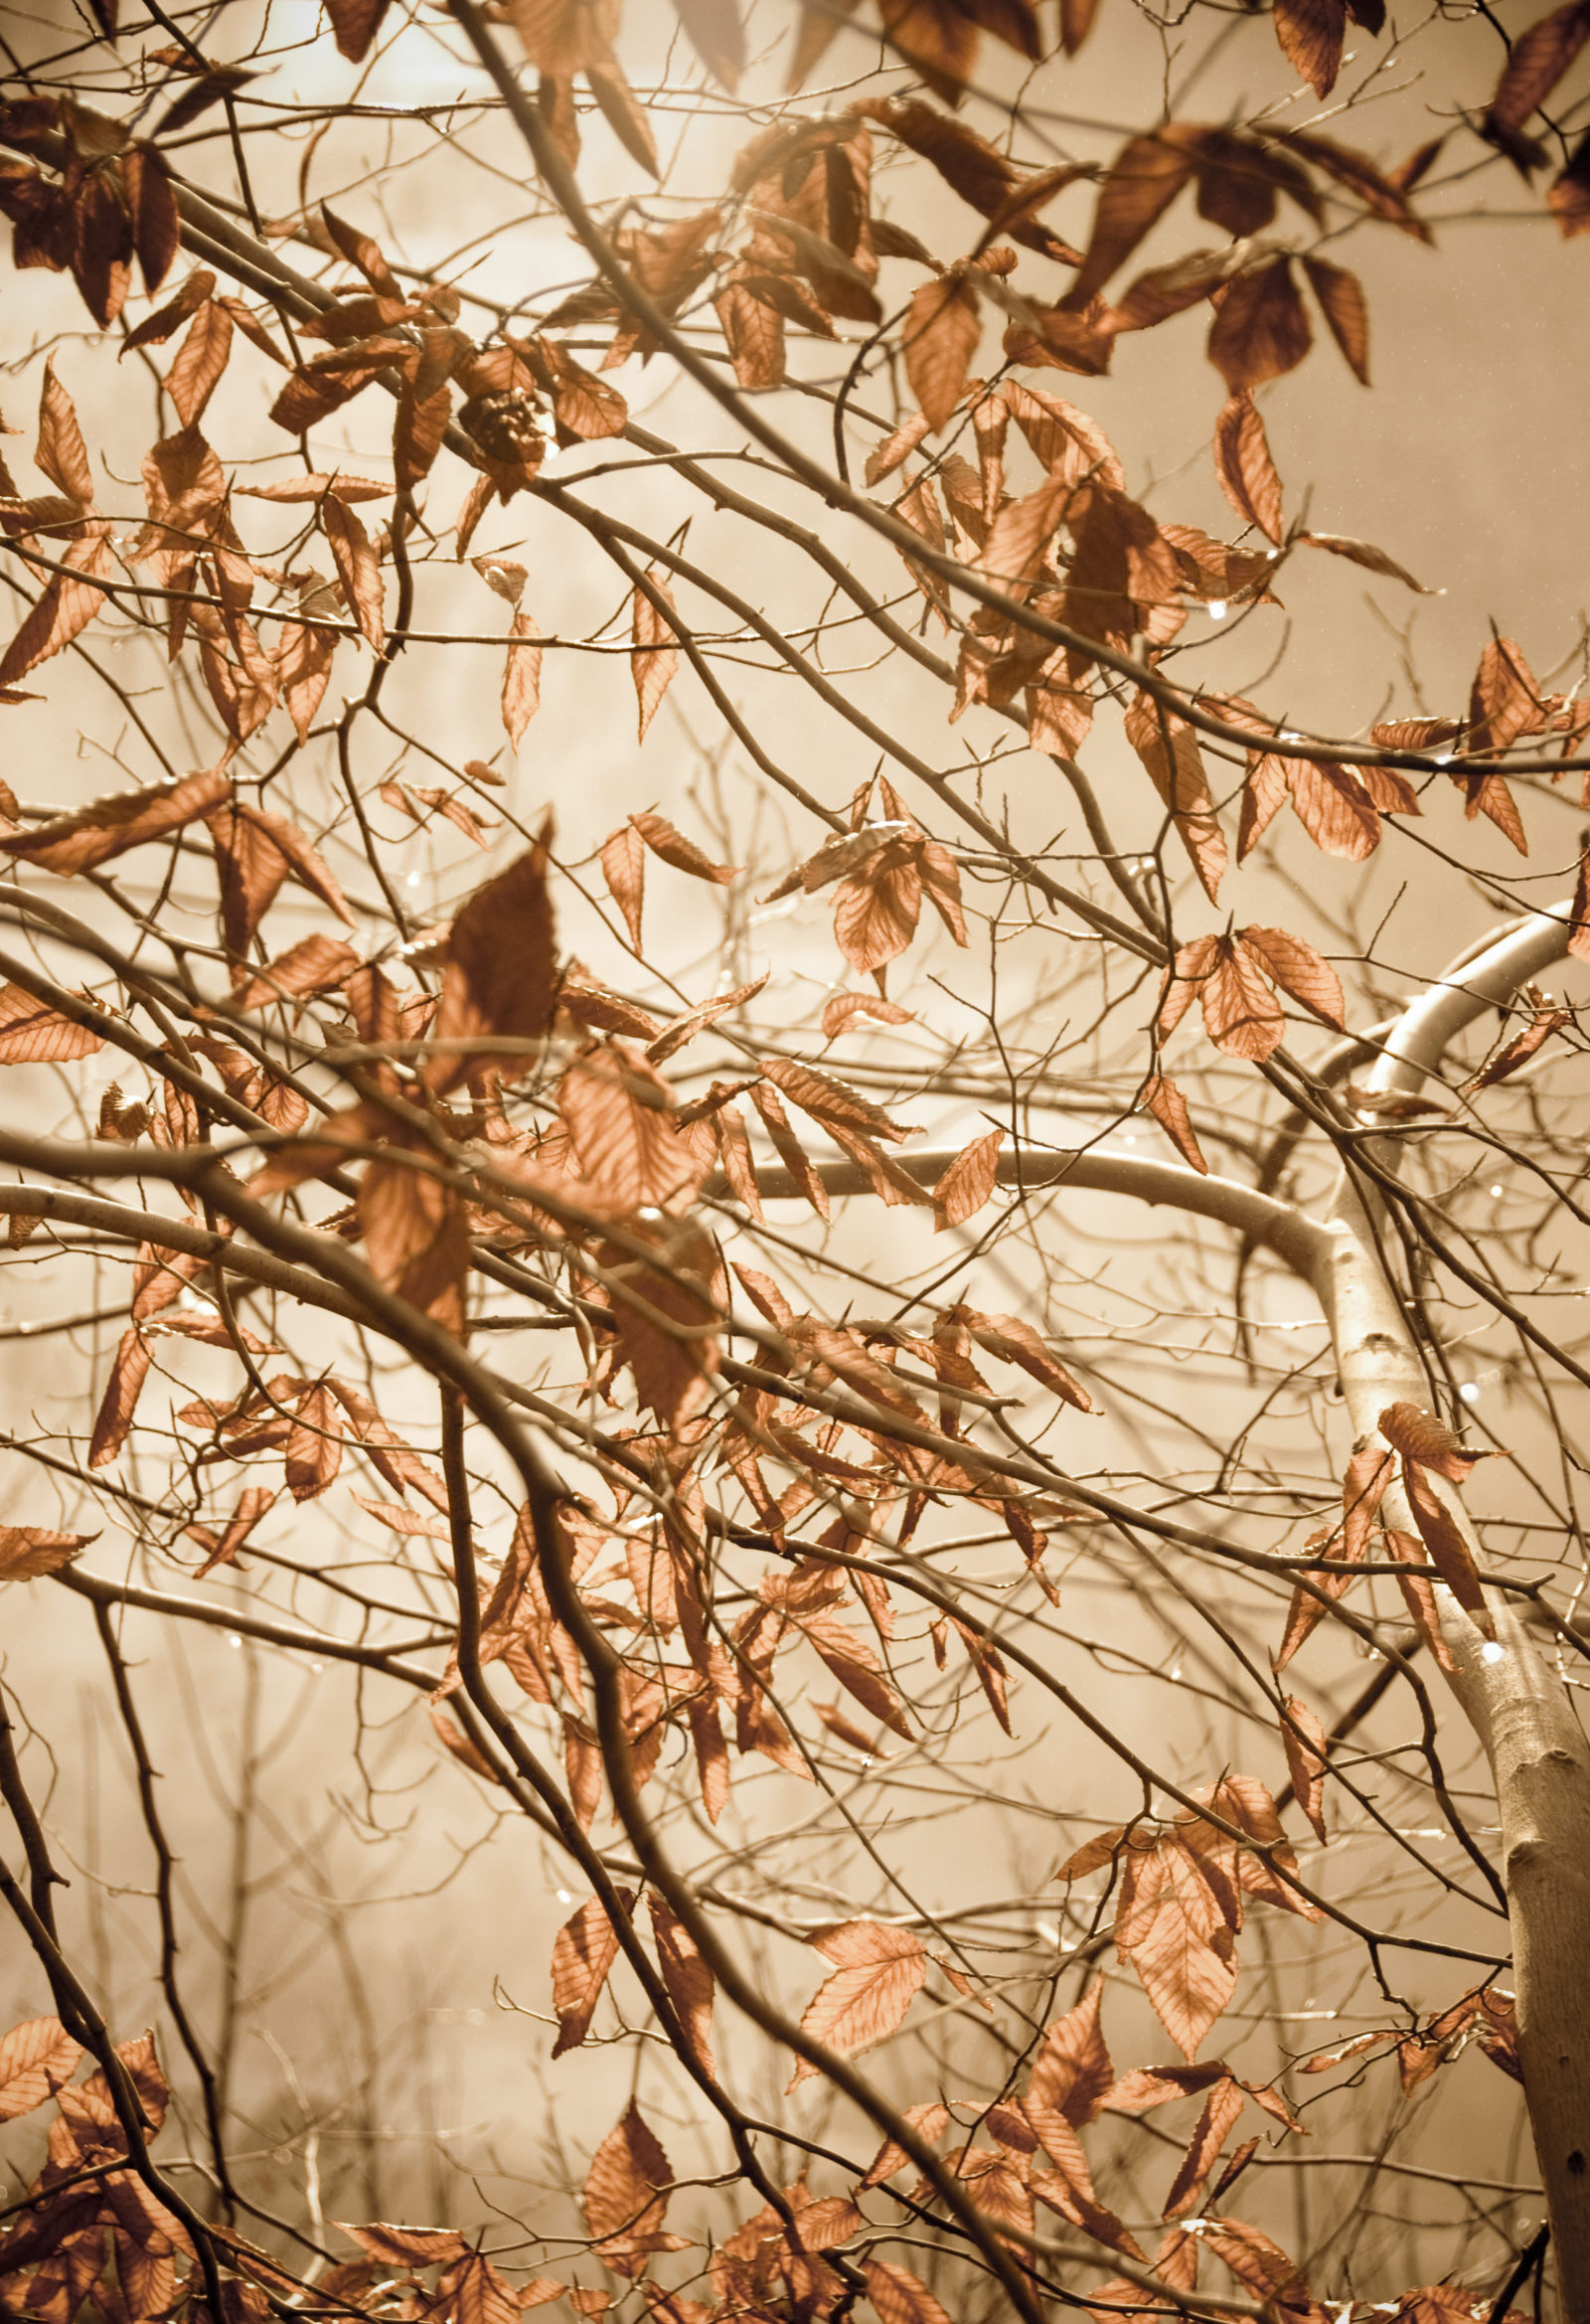 Aged Winter Leaves